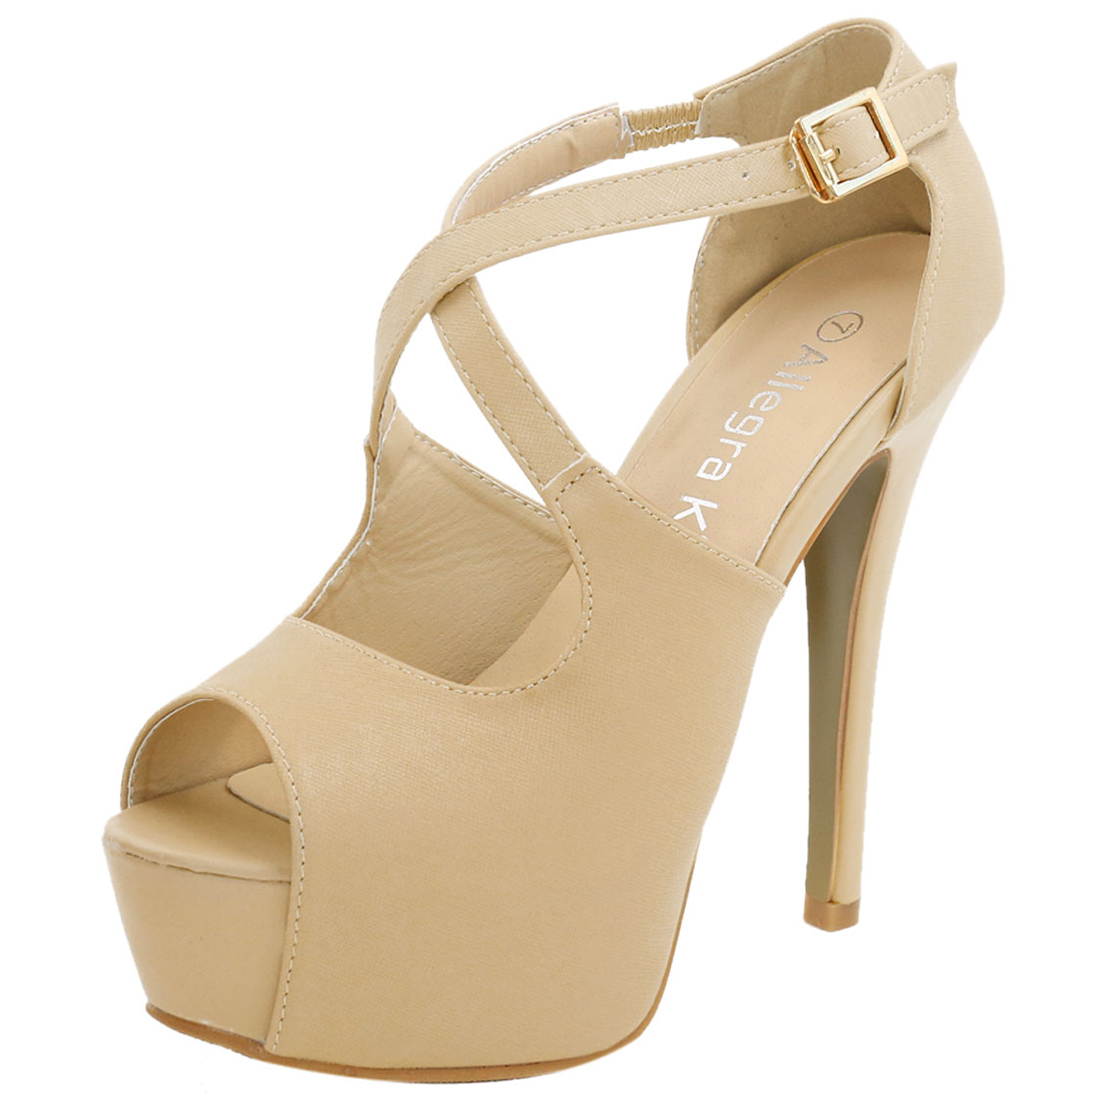 Woman Peep Toe High Heel Crisscross Straps Platform Sandals Beige US 9